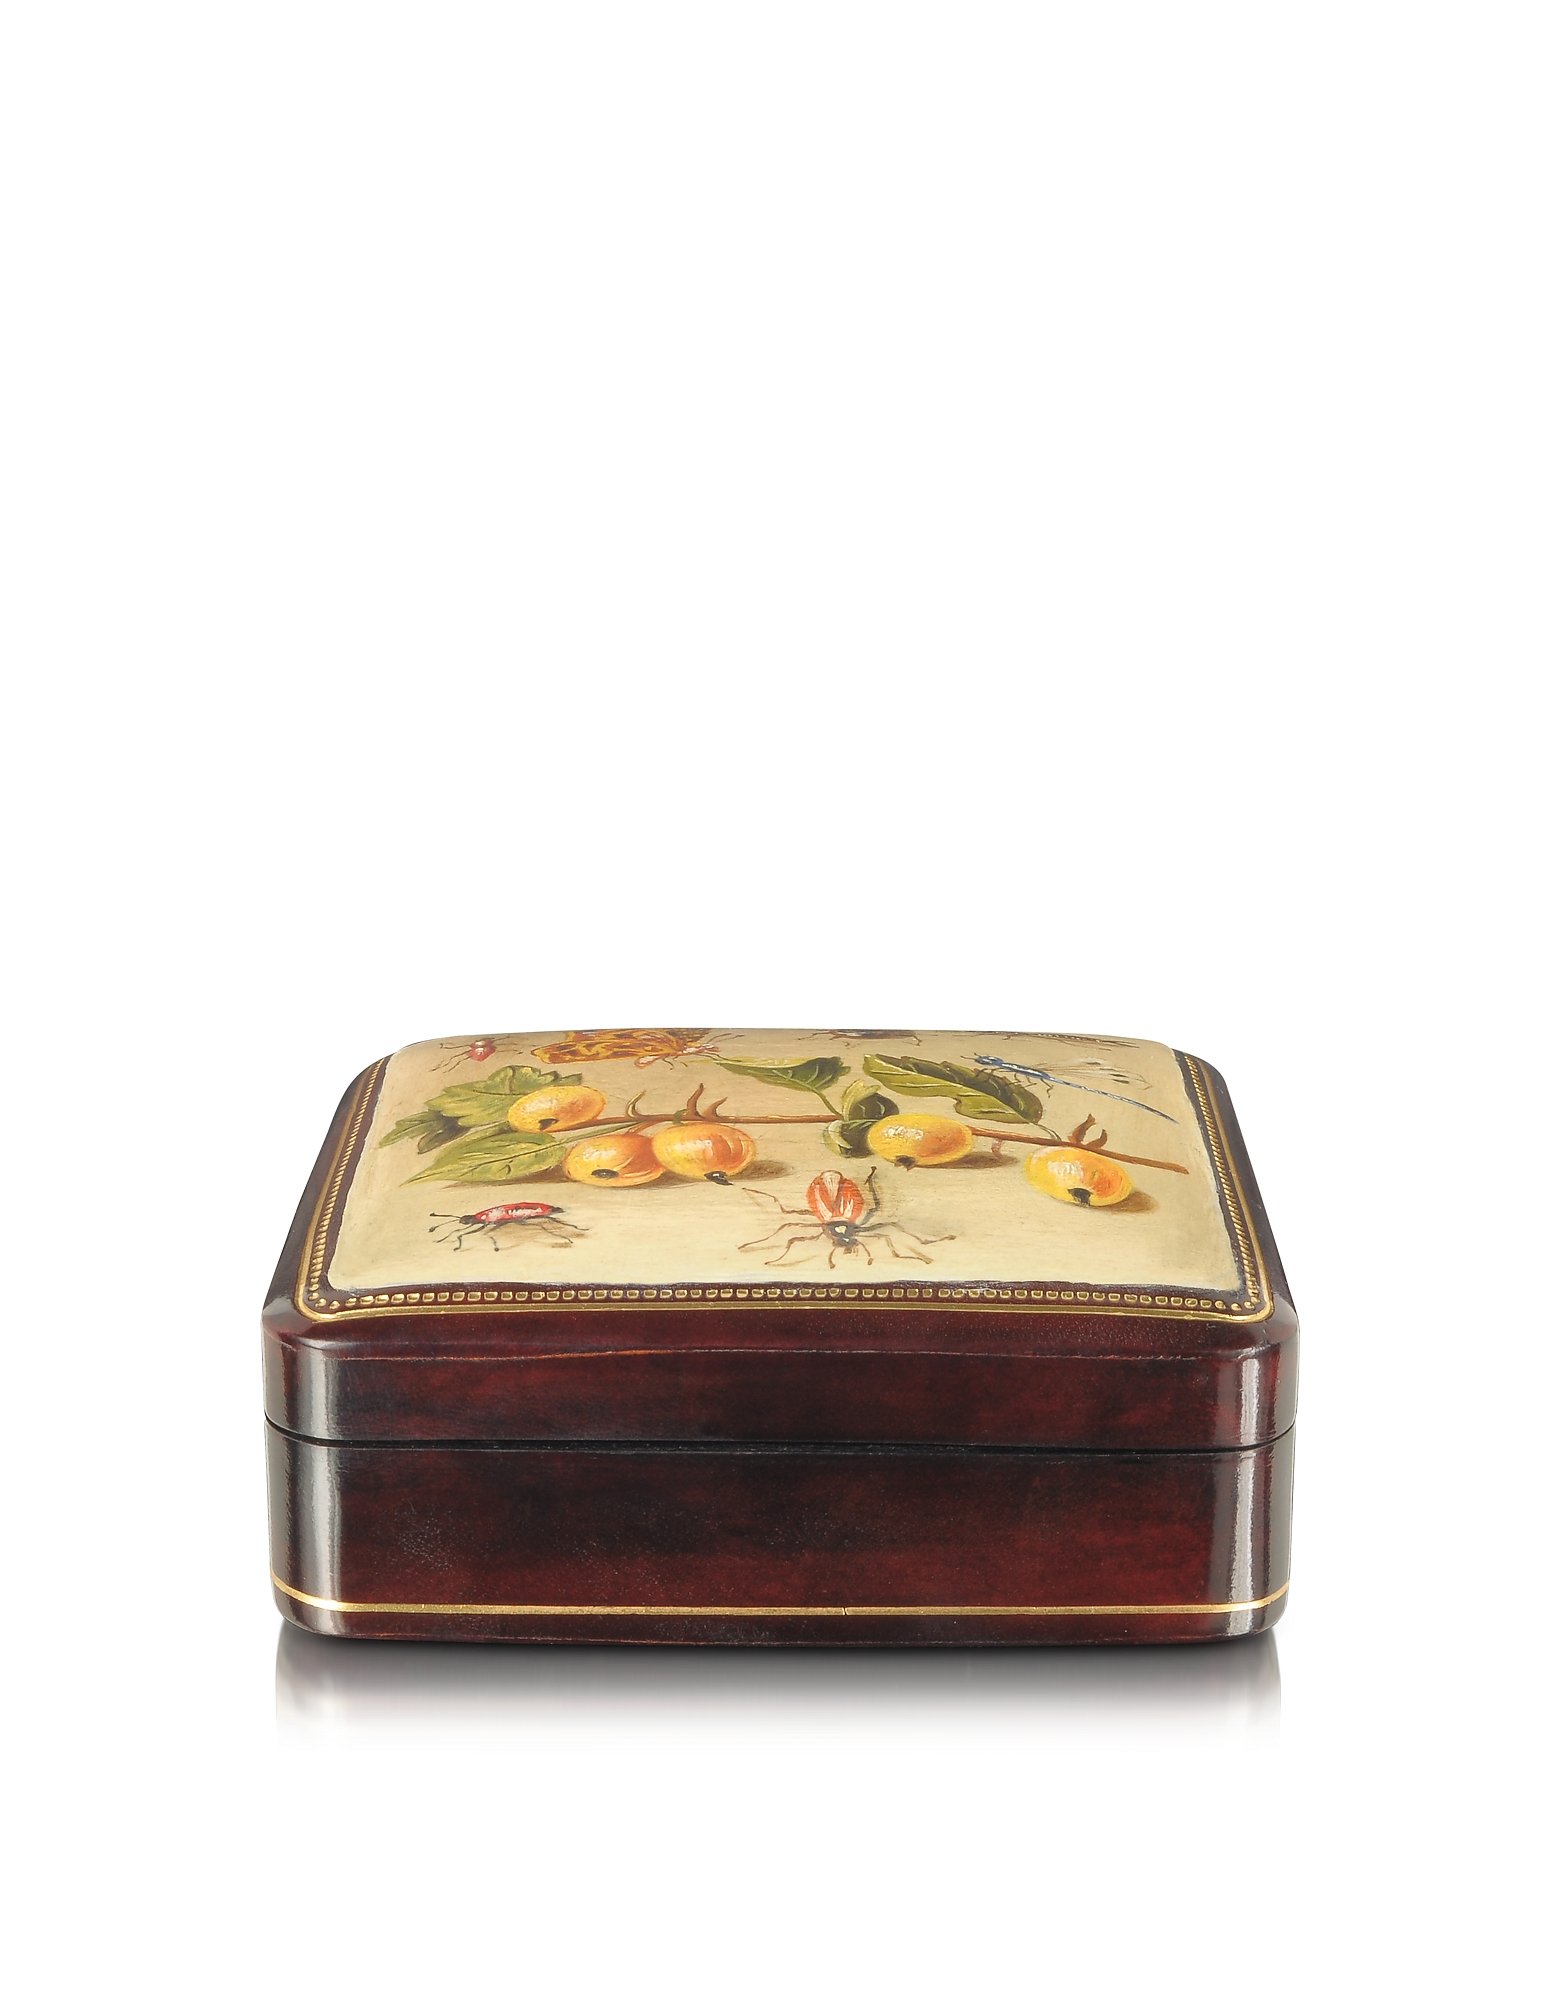 Oil on Leather Mini Jewelry Box, Yellow